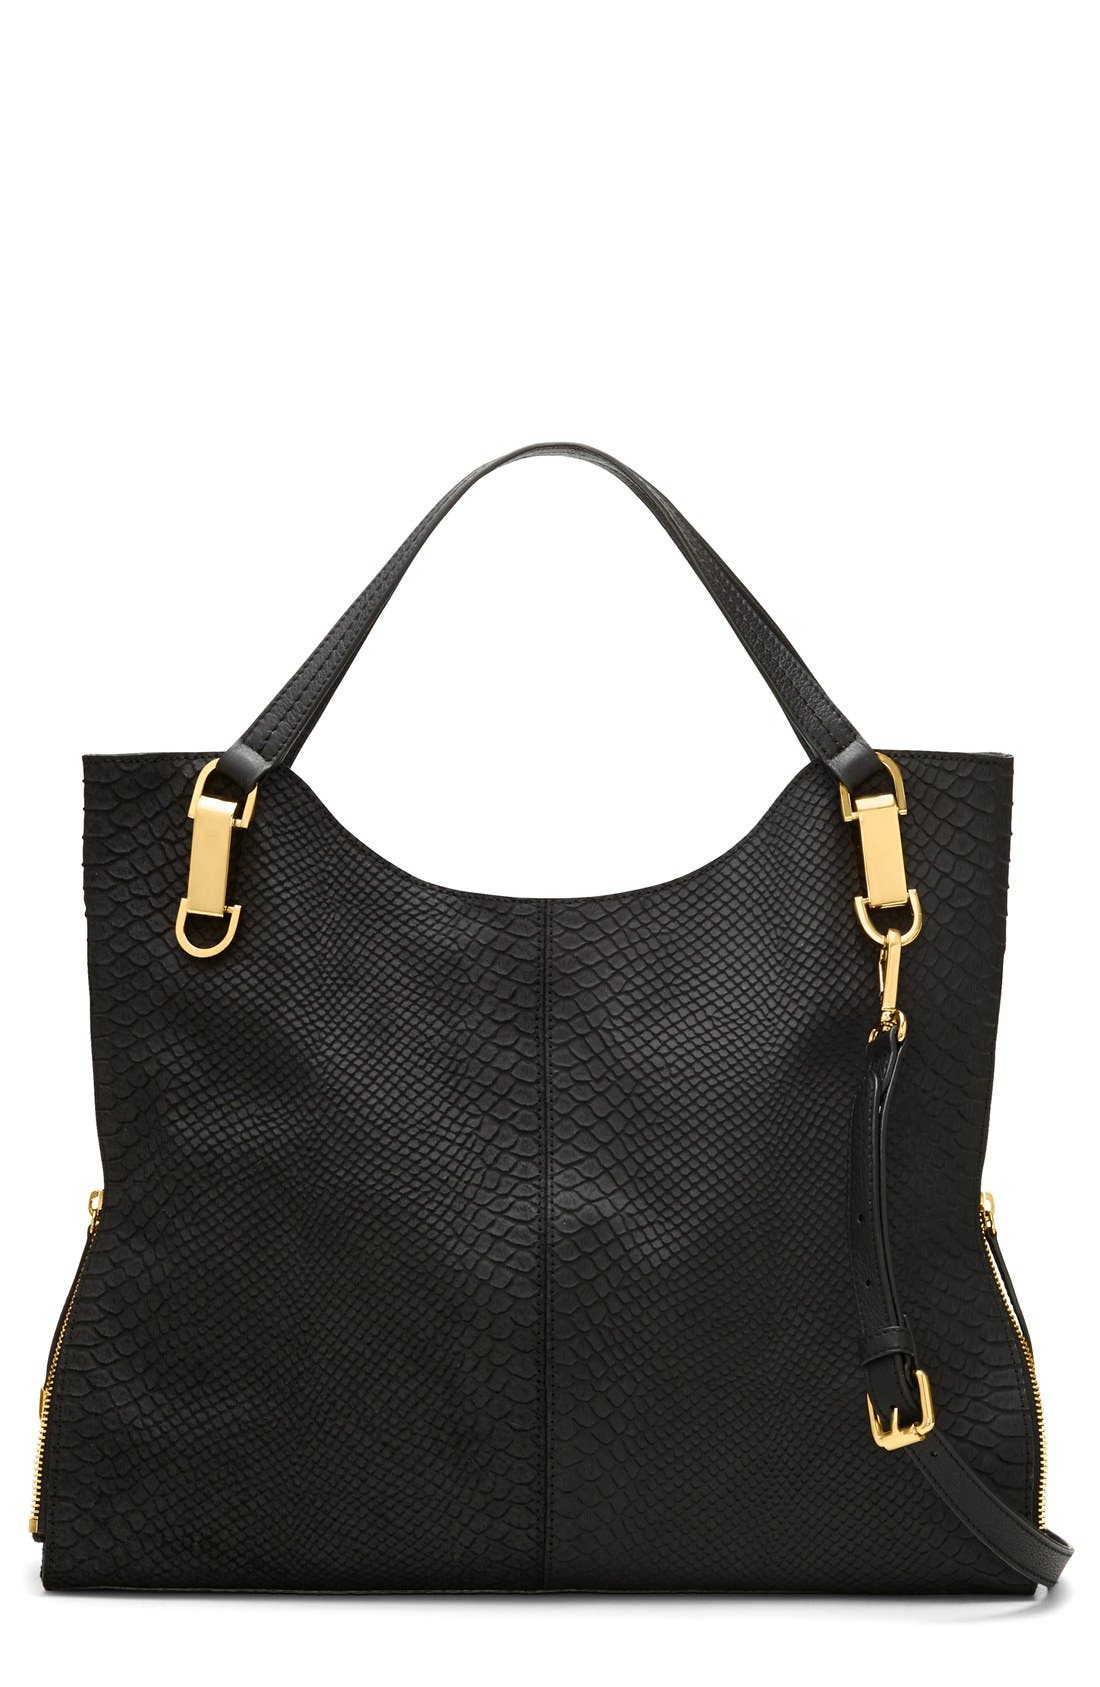 Main Image - Vince Camuto 'Riley' Snake Embossed Leather Tote